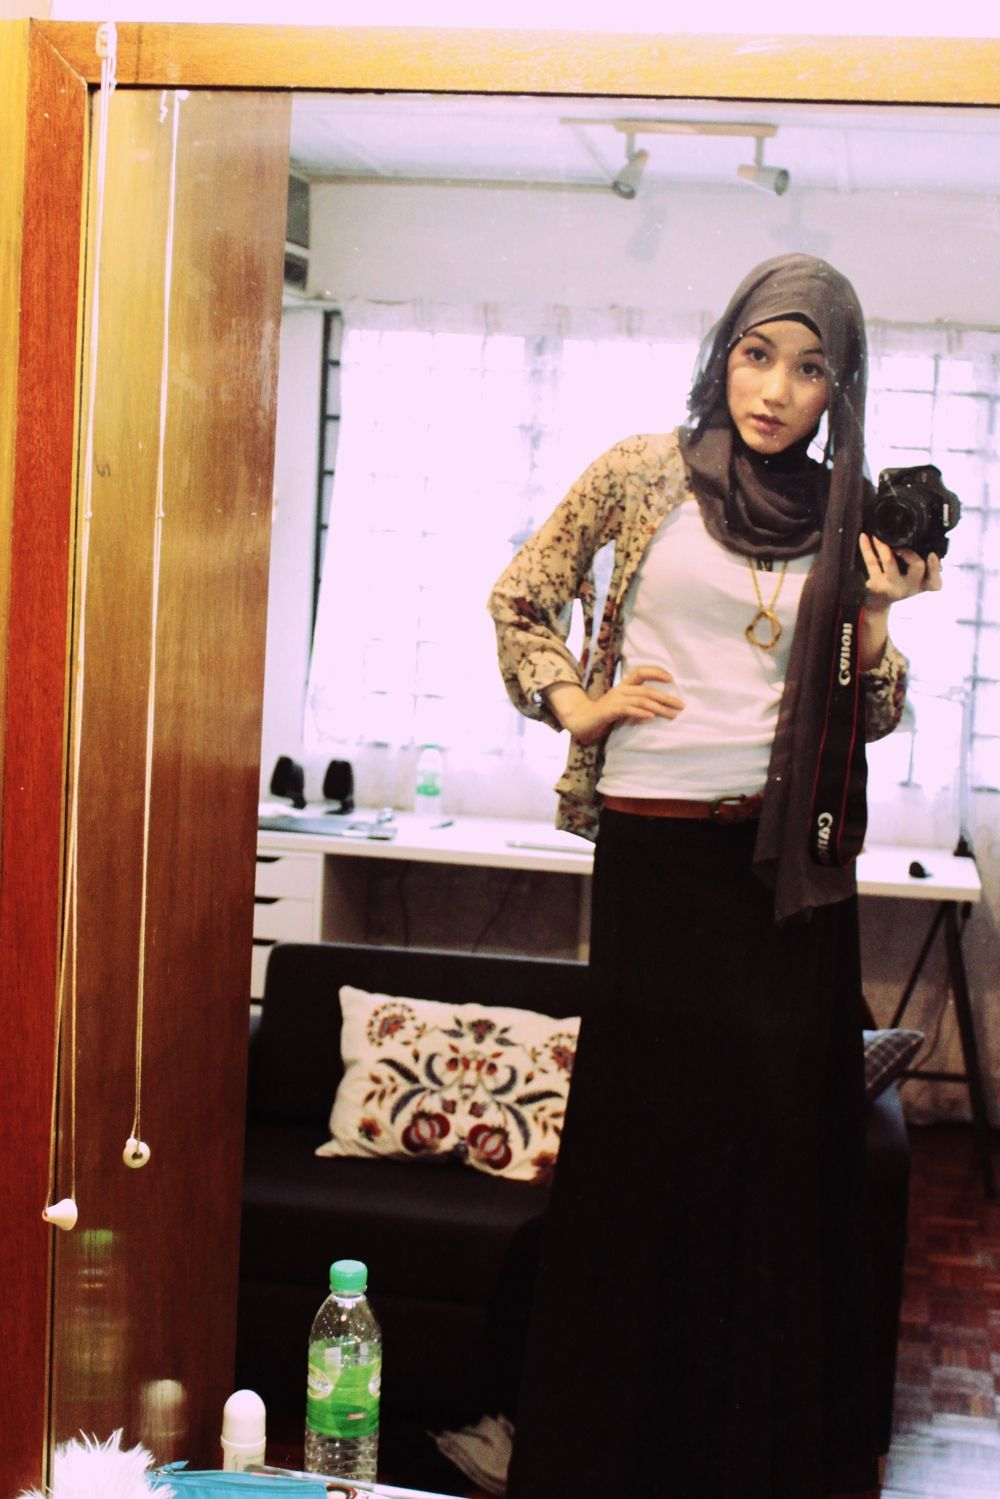 Hthana Tajima Hijab Style Girl Fashion And Style Image On We